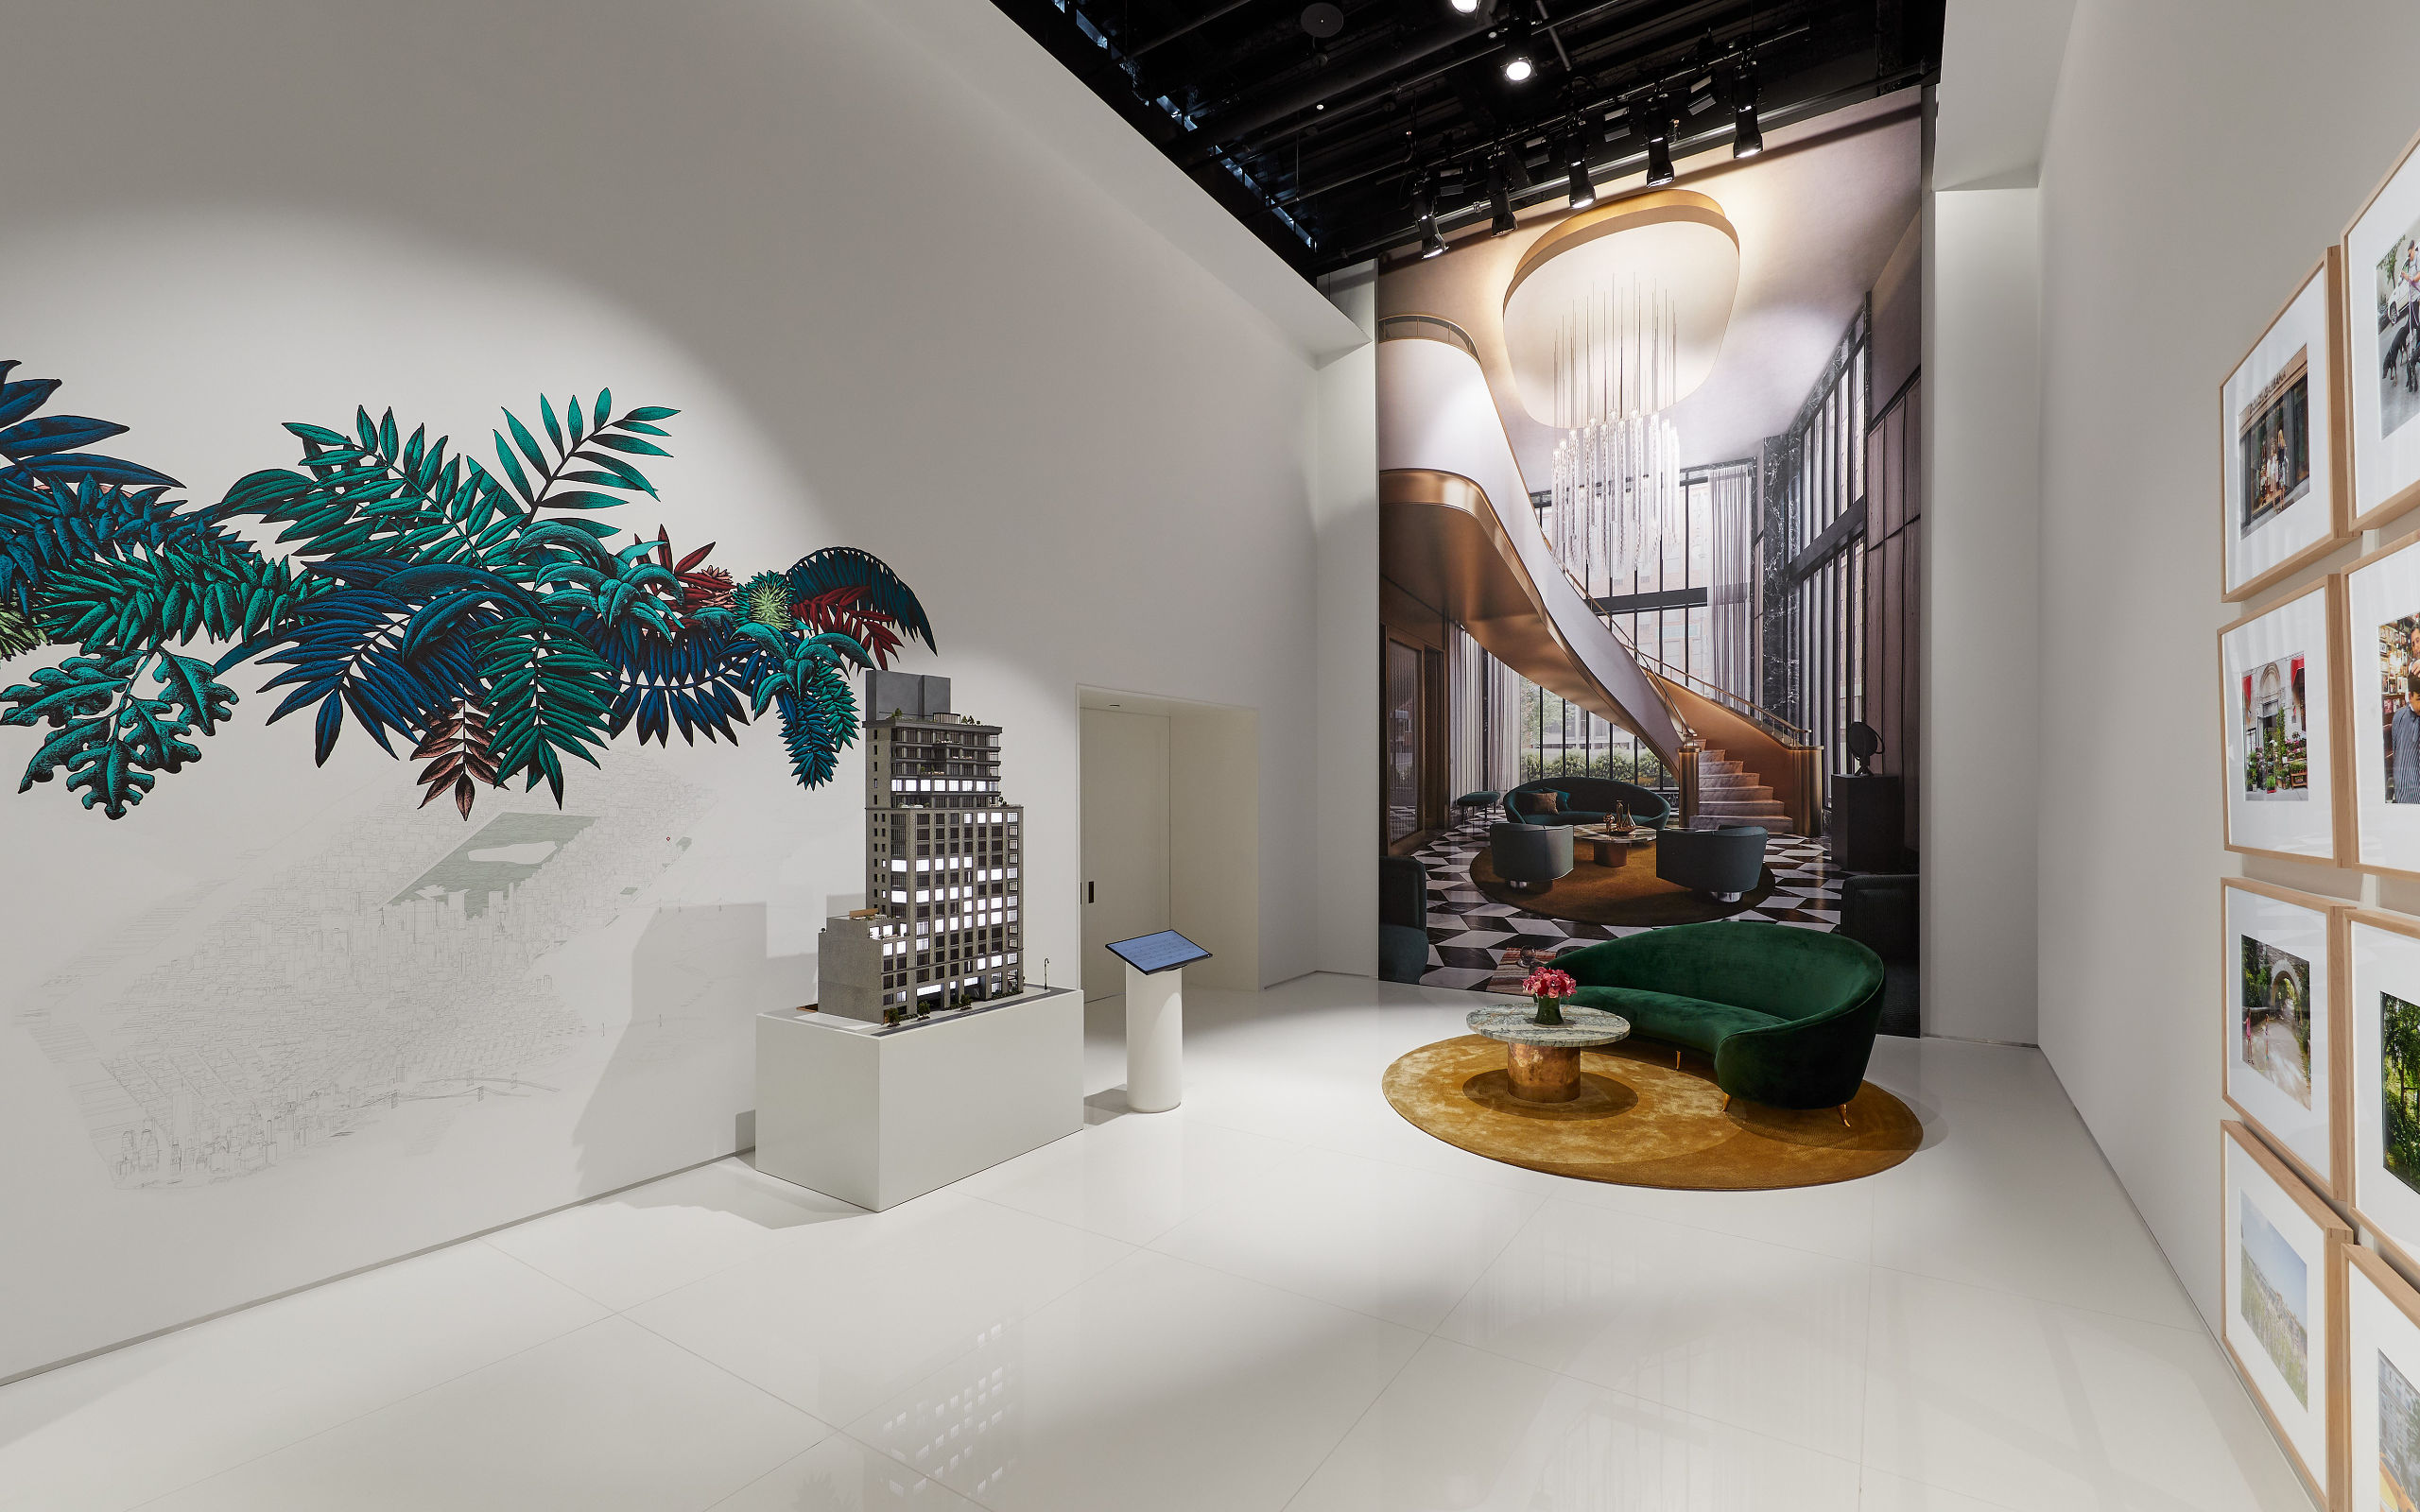 40 East End Avenue model showroom with artwork, large building renderings and model in front of green sofa.